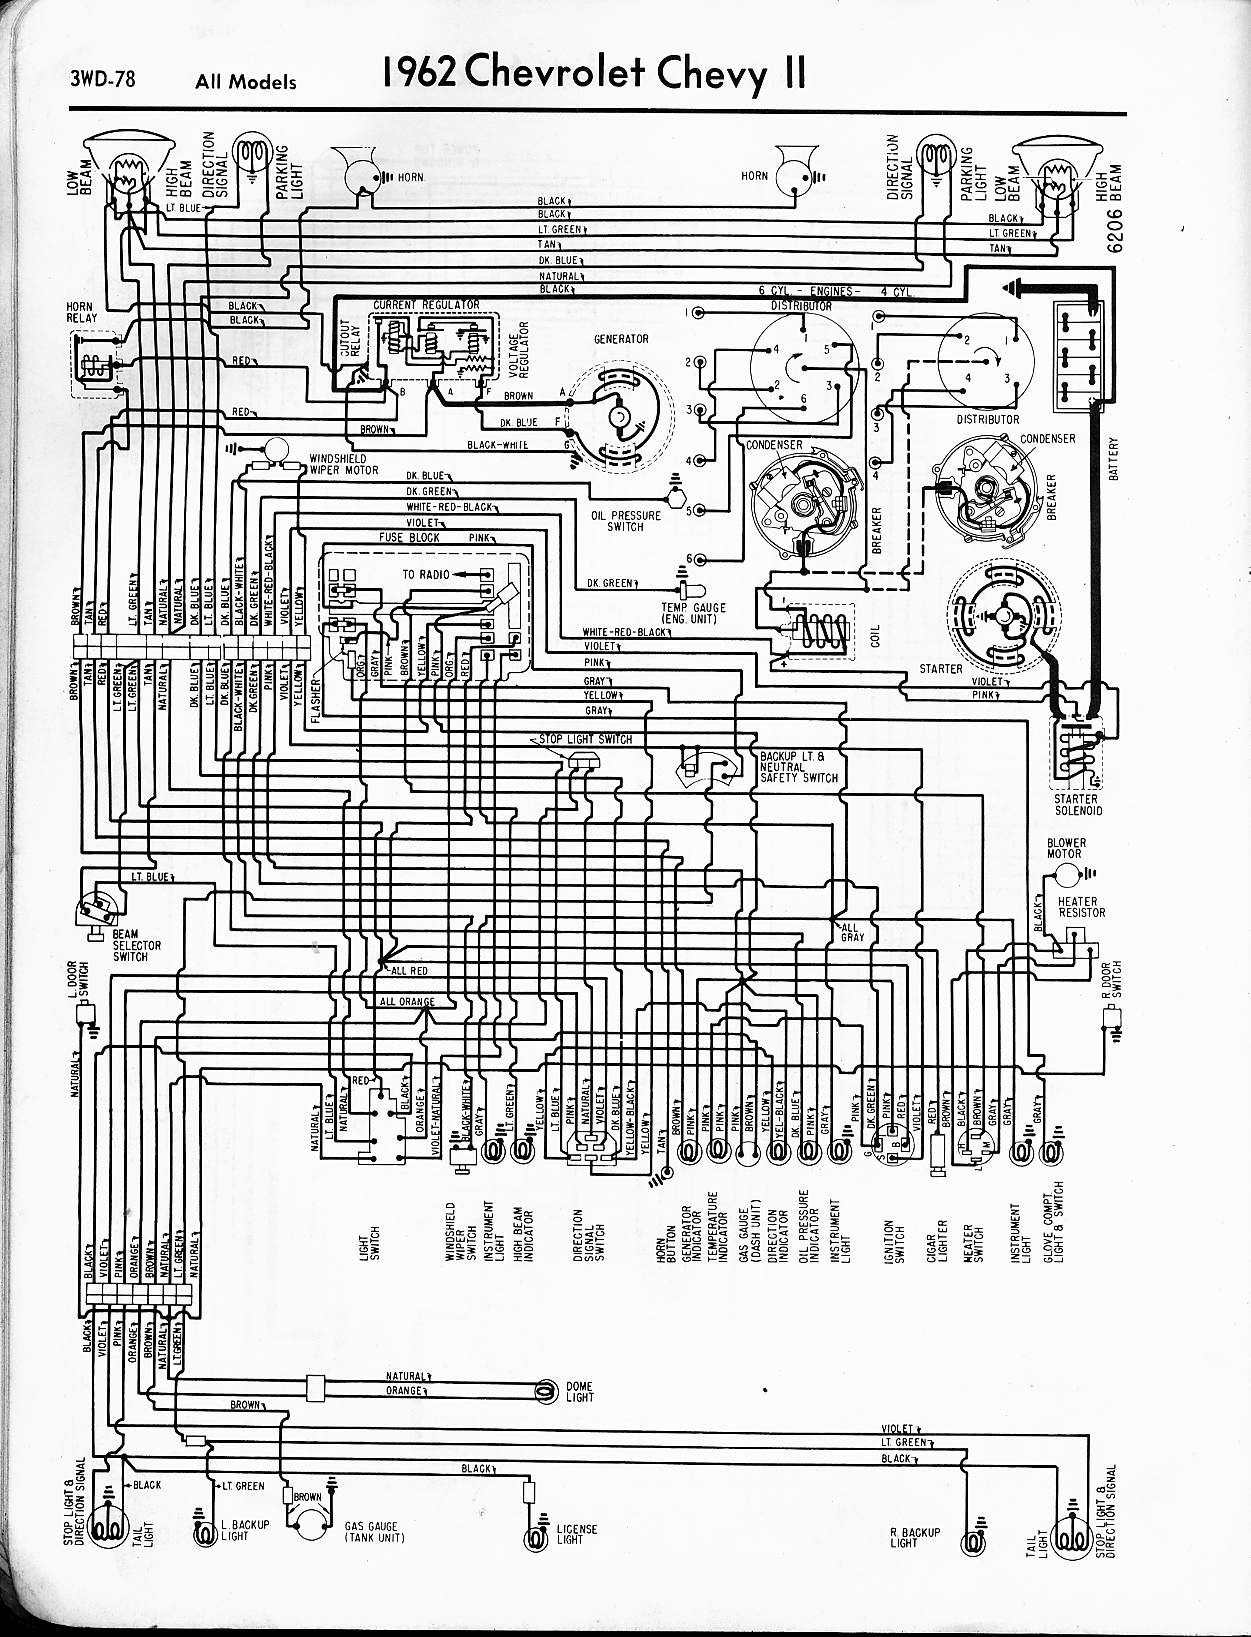 1964 chevrolet truck wiring diagrams cytokinesis diagram labeled chevy fuse box free image 1974